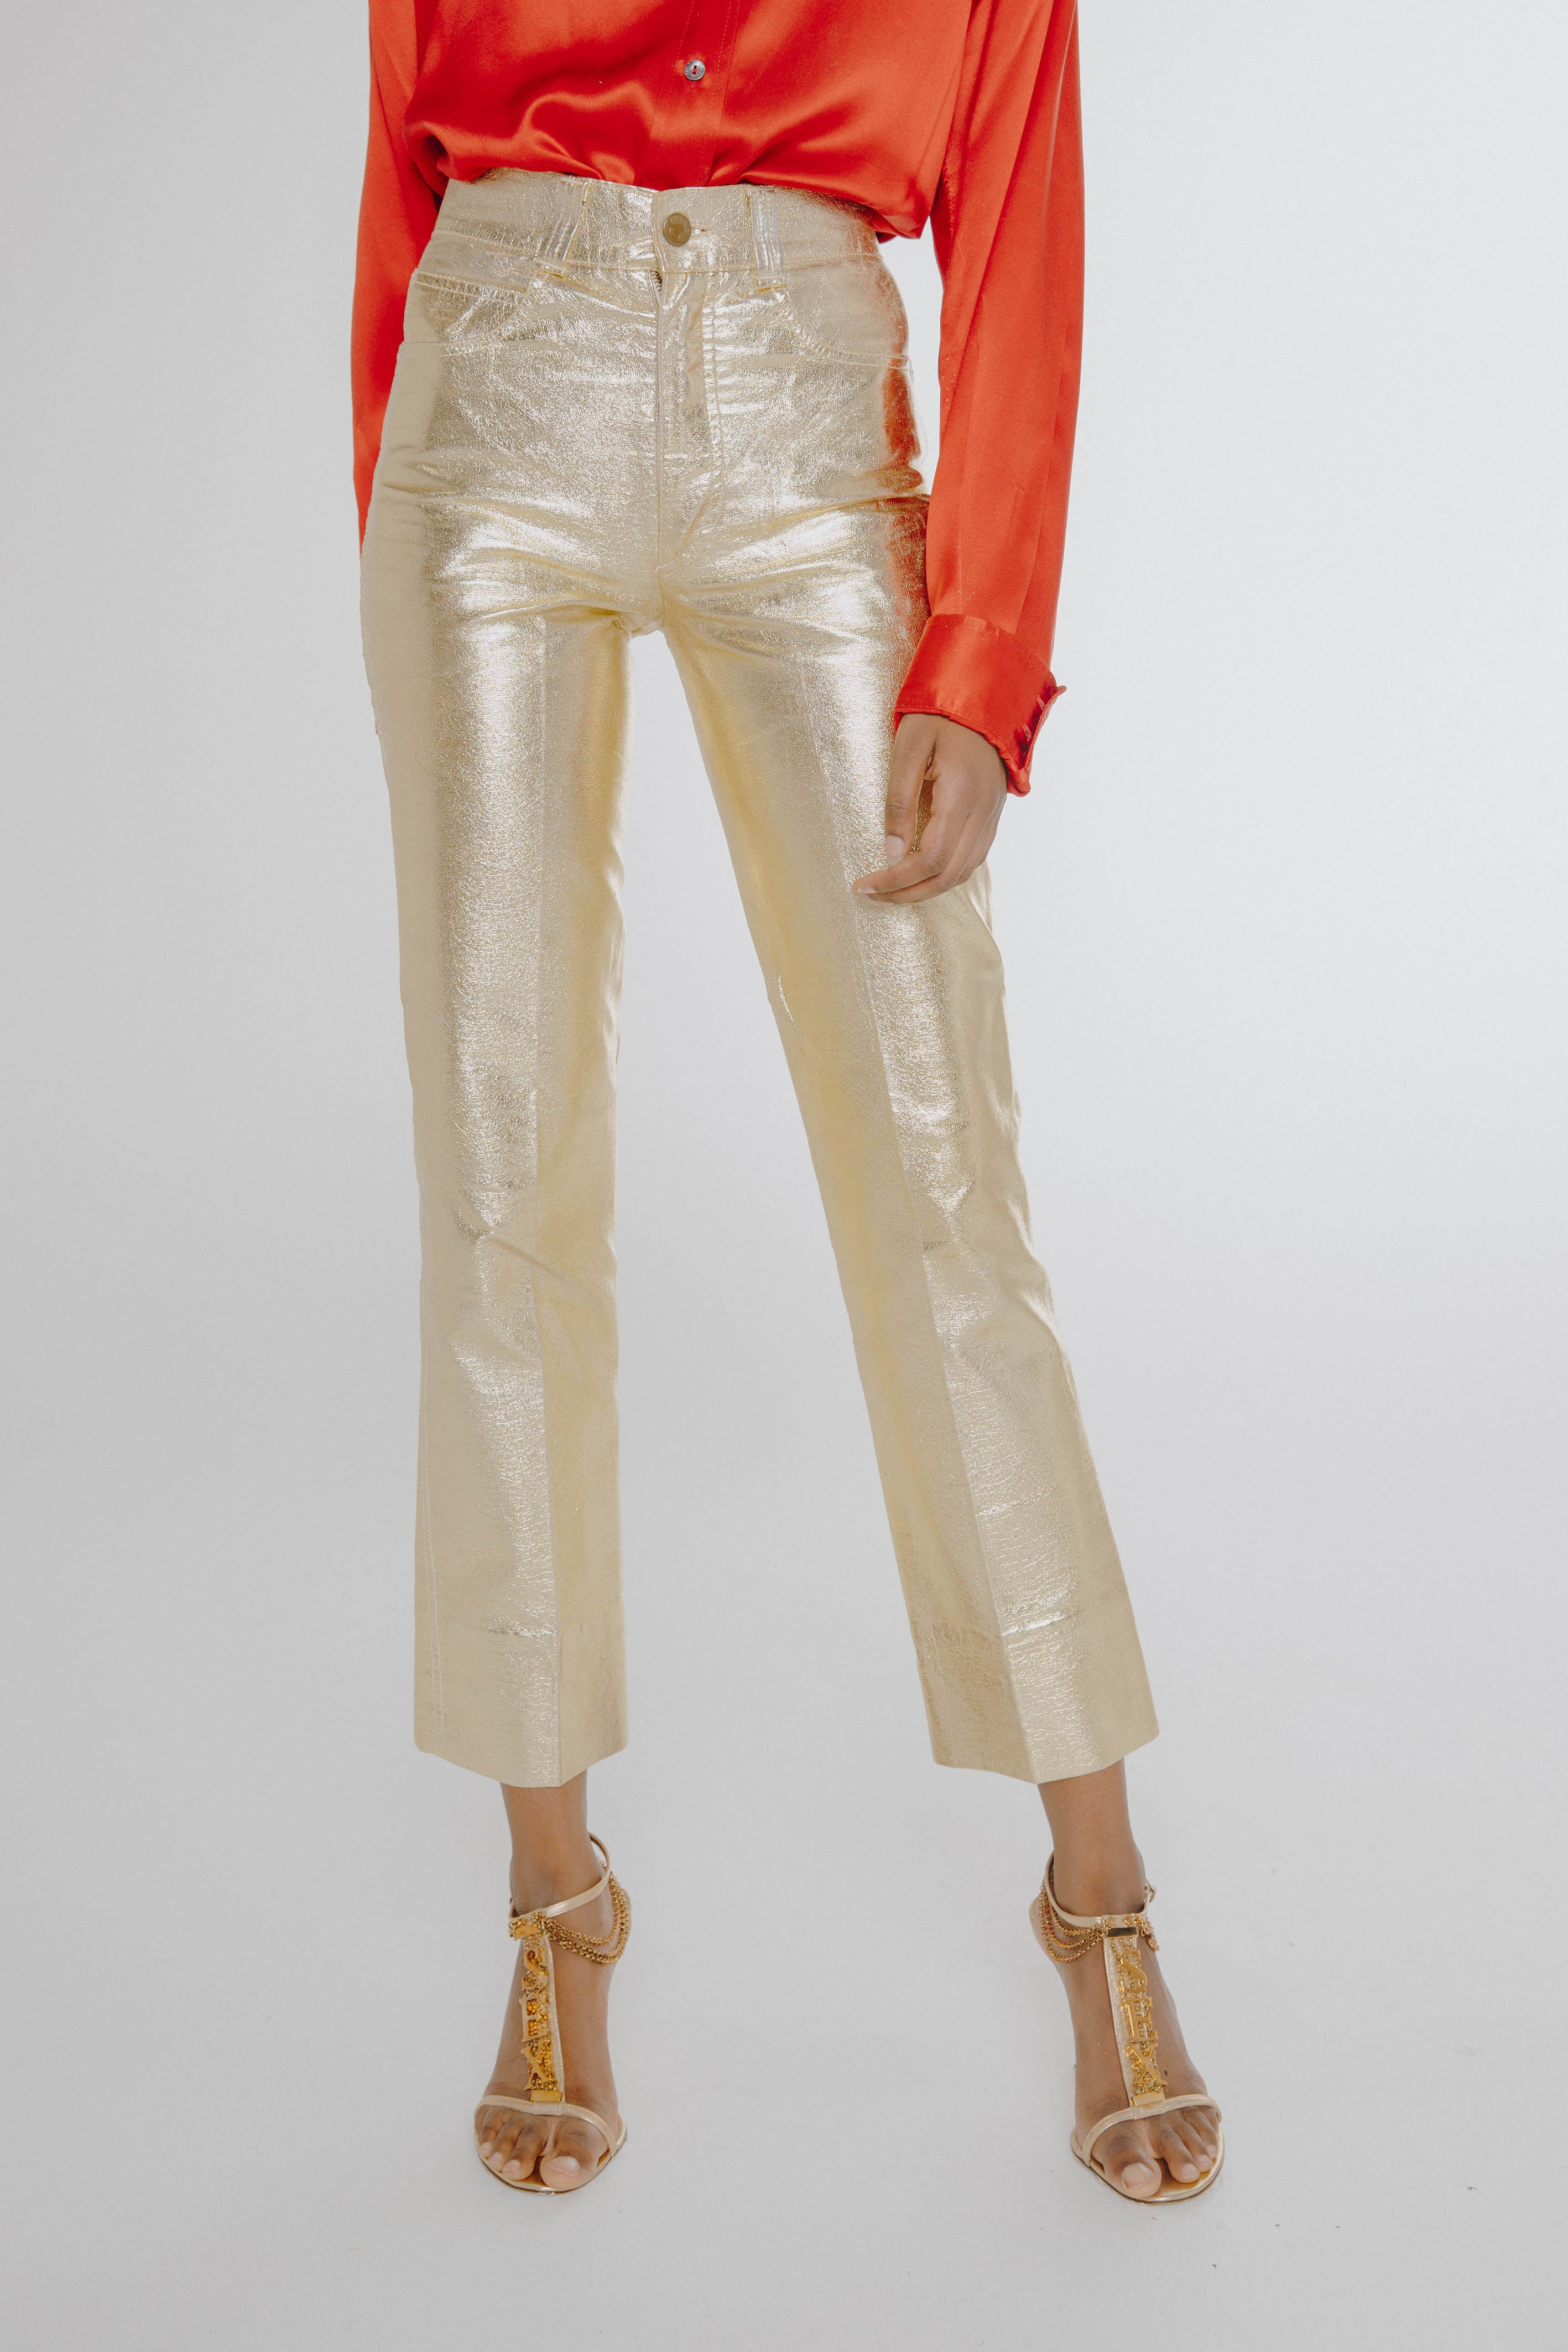 Fiorucci <br> 70's Safety Jeans gold disco pants